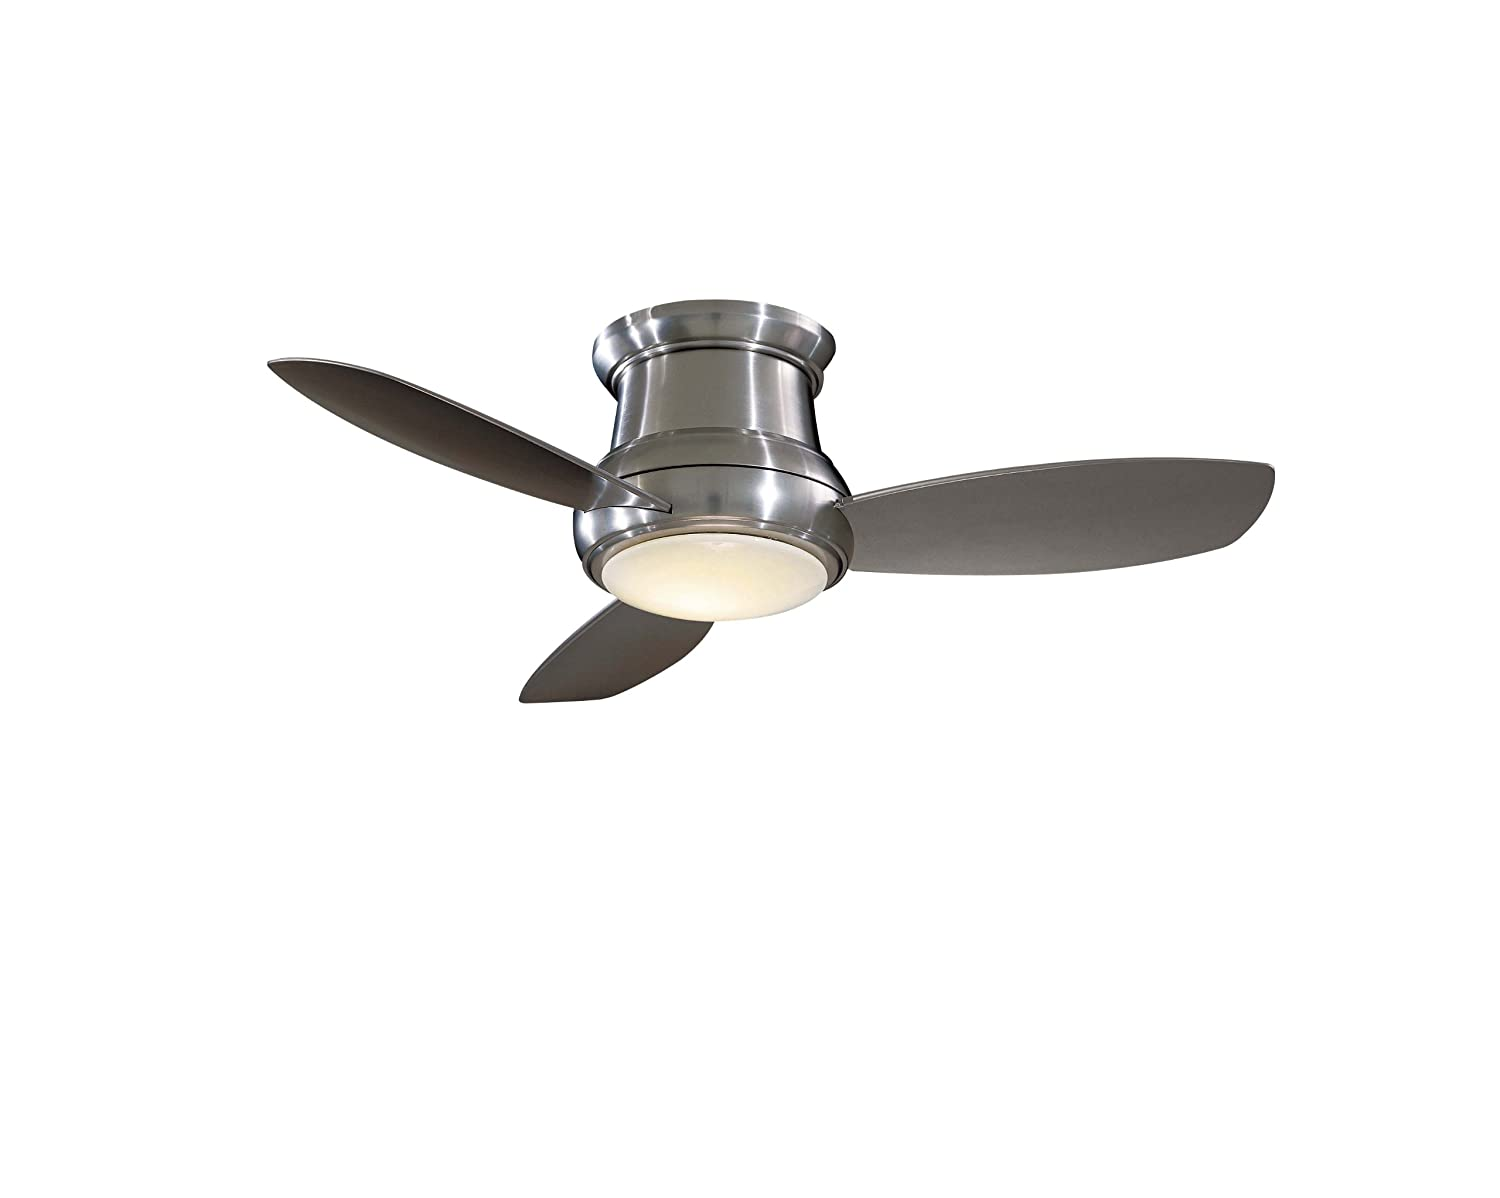 Minka Group Company F518-BN Flush Mount, 3 Silver / Pewter Blades Ceiling  fan with 100 watts light, Brushed Nickel